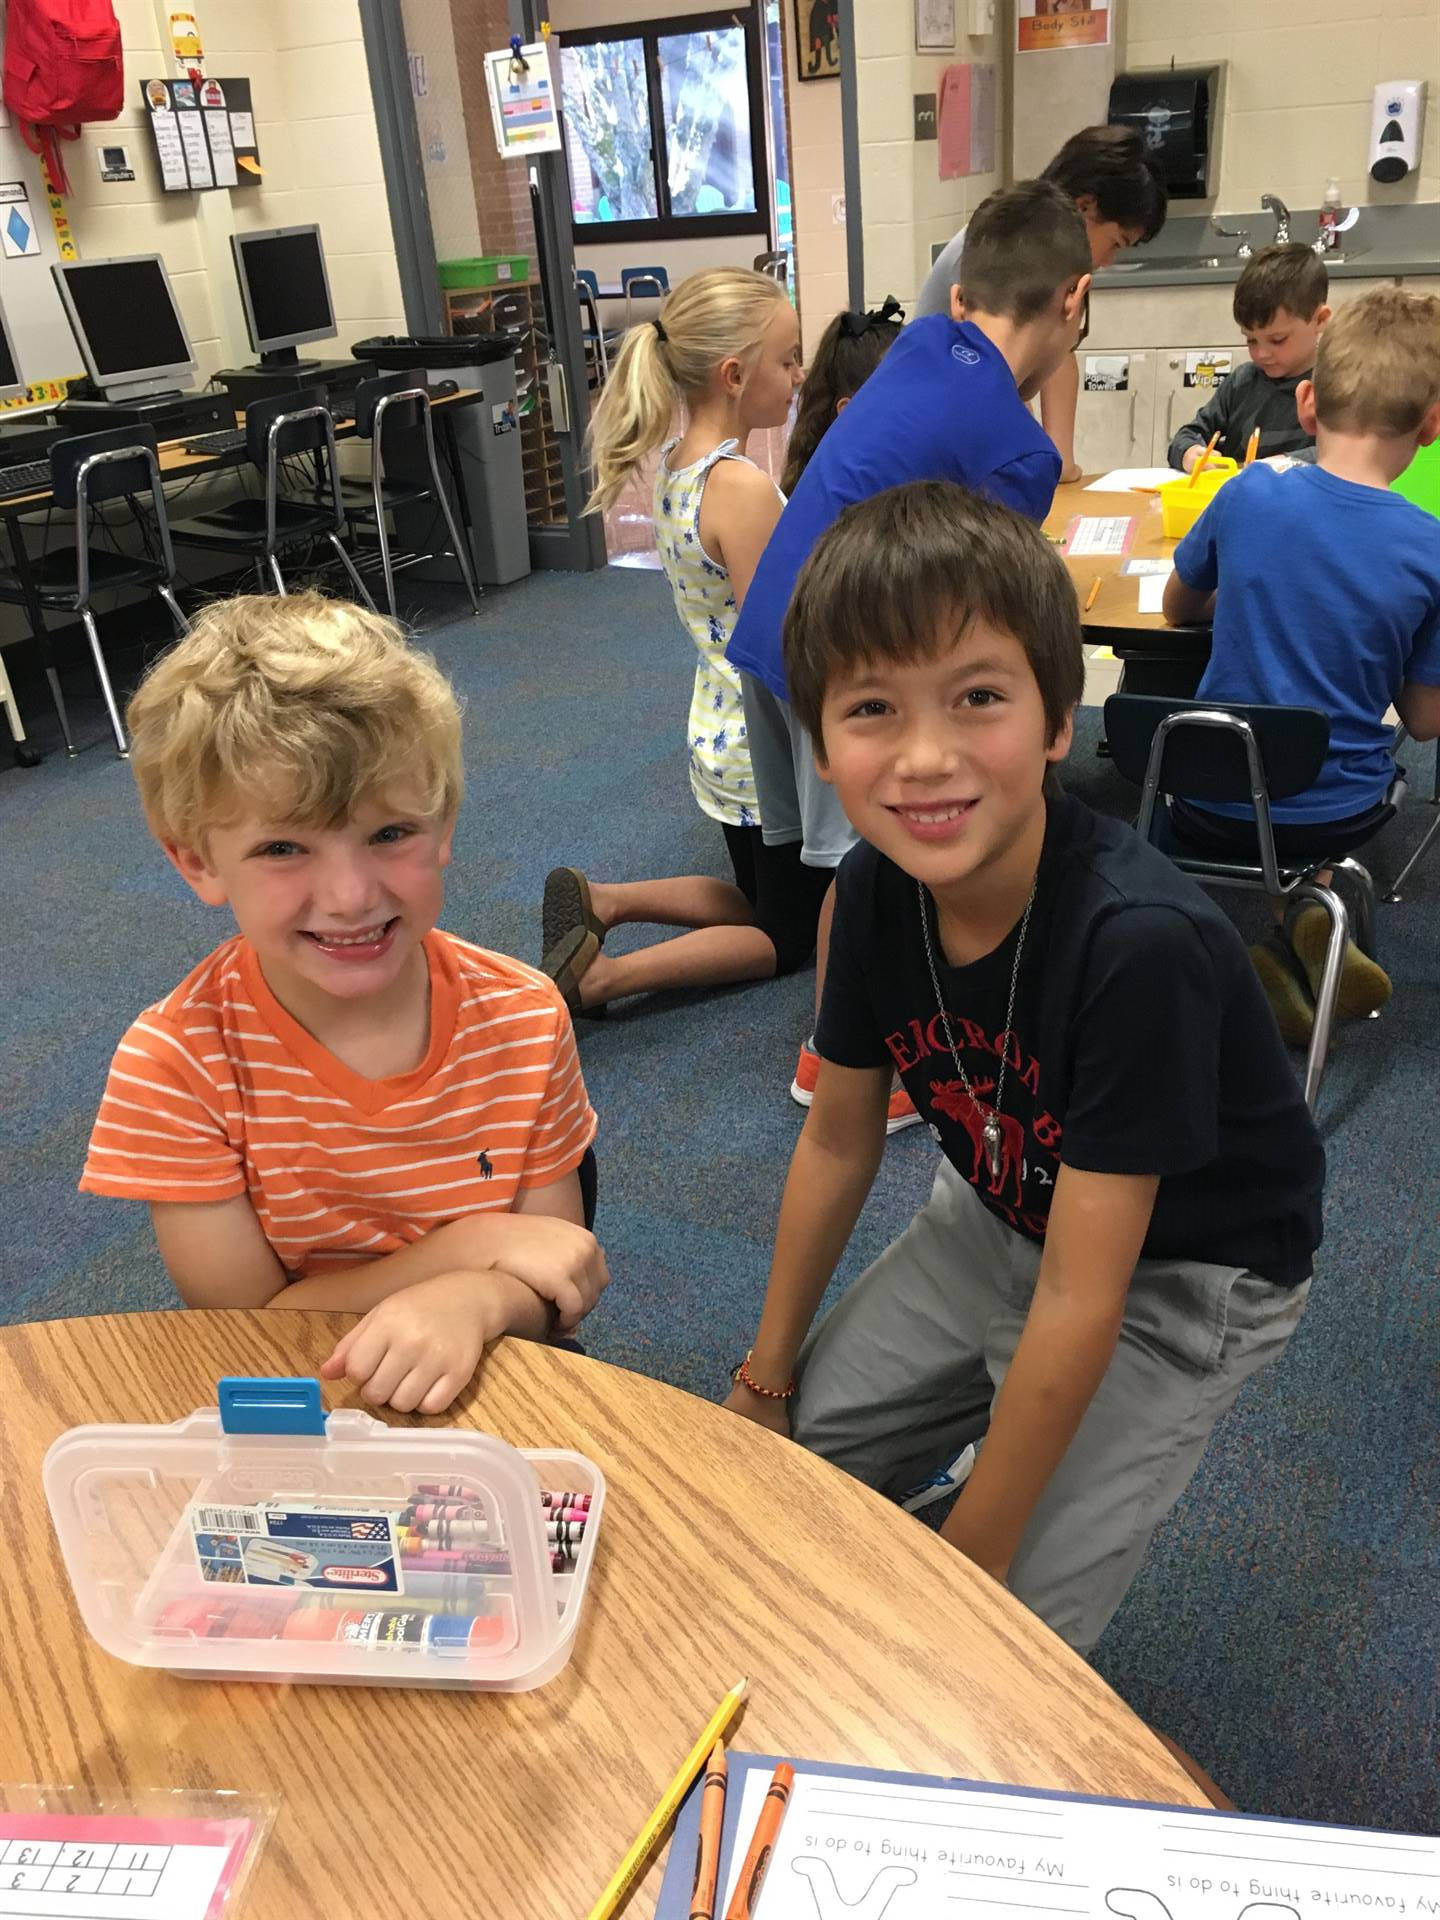 Cannon and 4th Grade Buddy